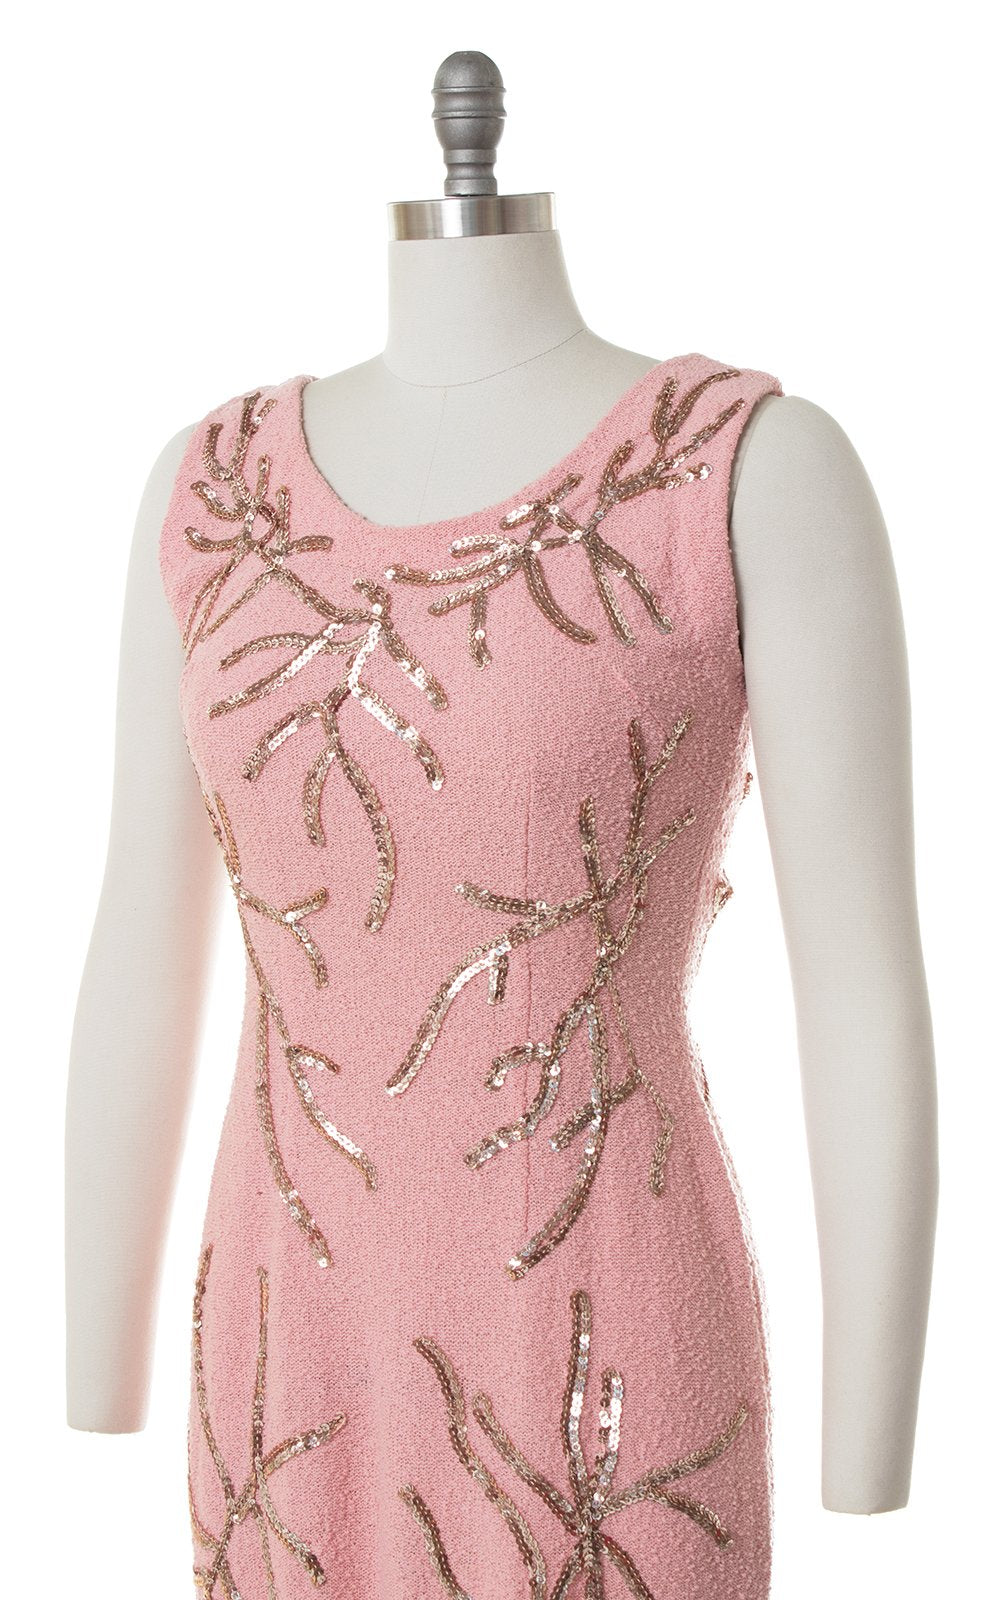 1950s Snyderknit Sequin Pink Knit Wool Sweater Dress